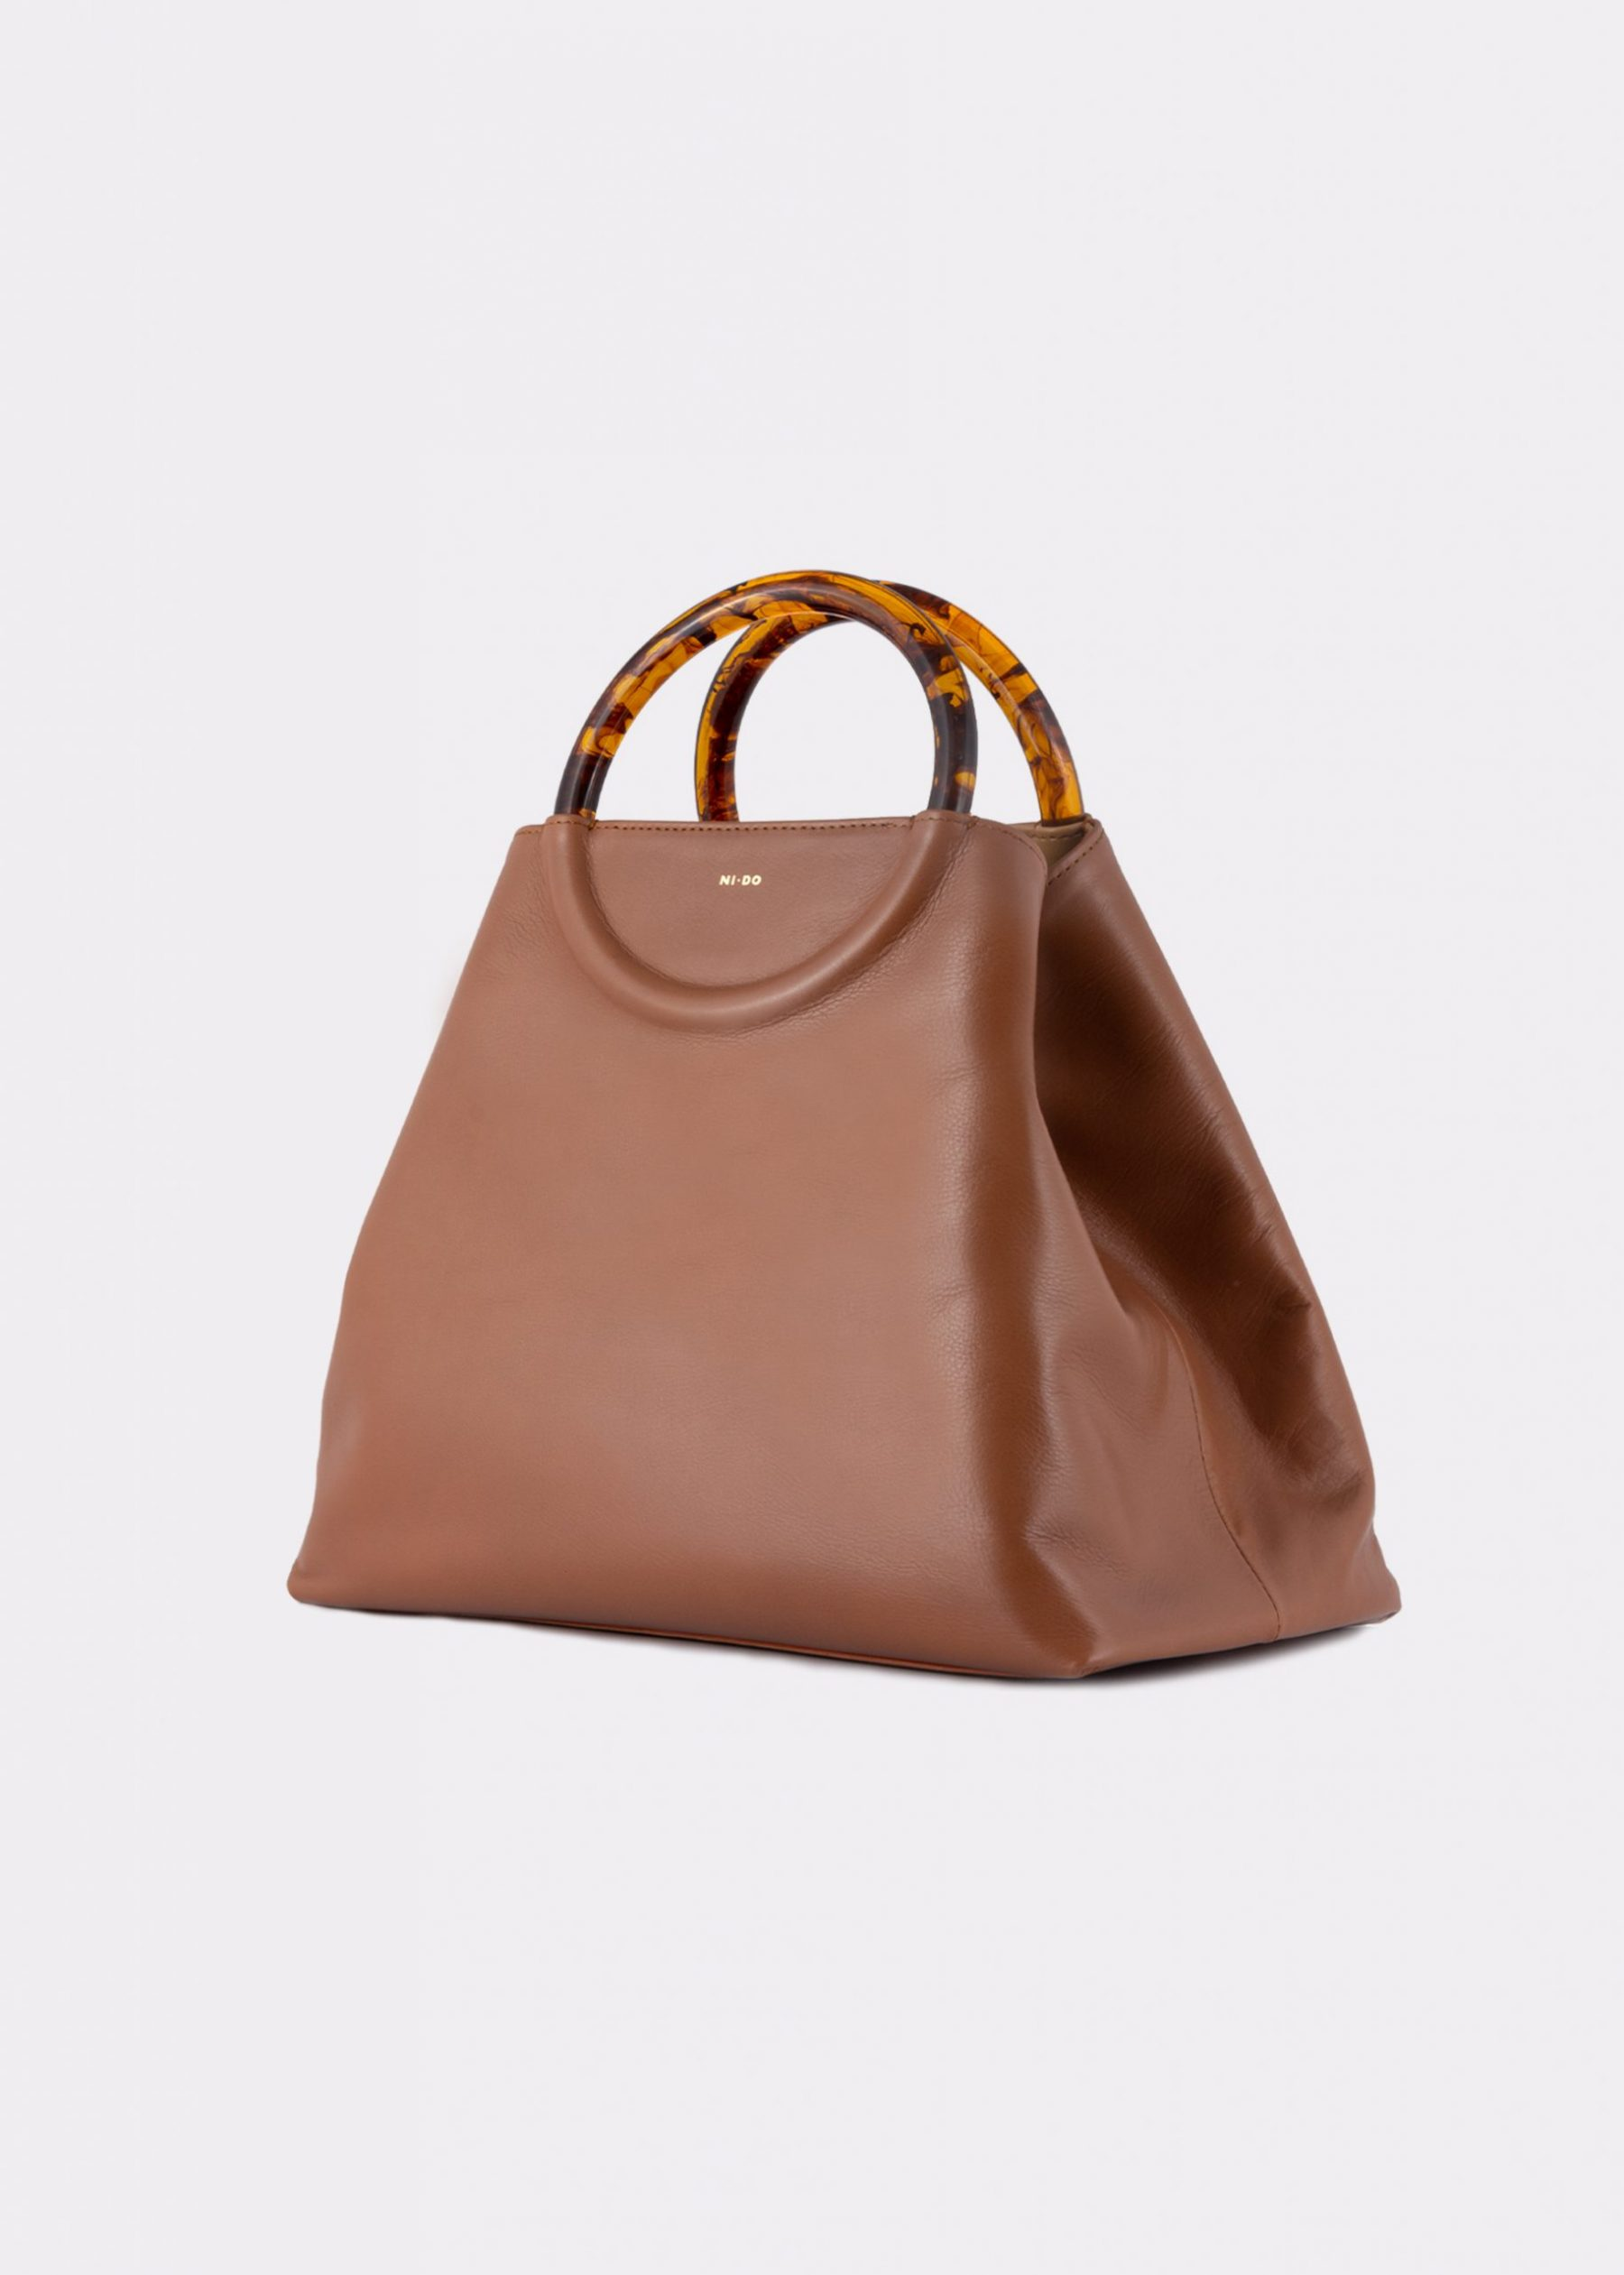 NIDO-Bolla_Maxi-bag-bisquit_side view